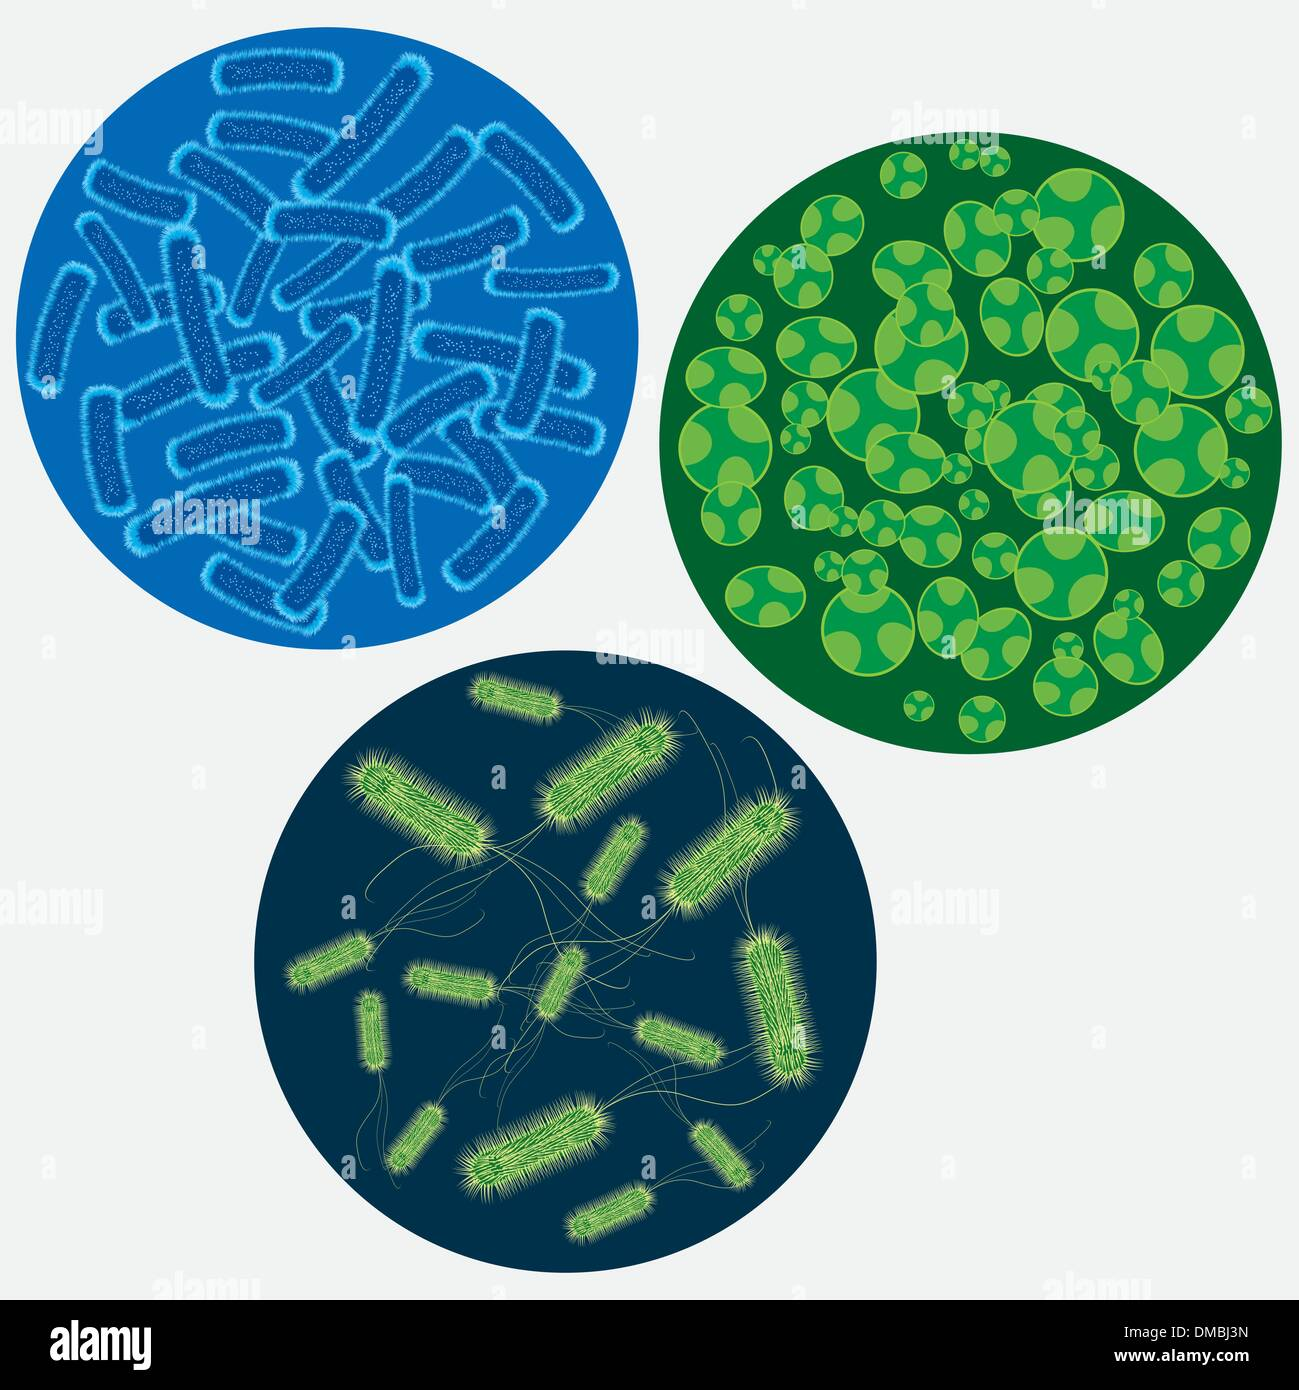 Abstract images of viruses. - Stock Image